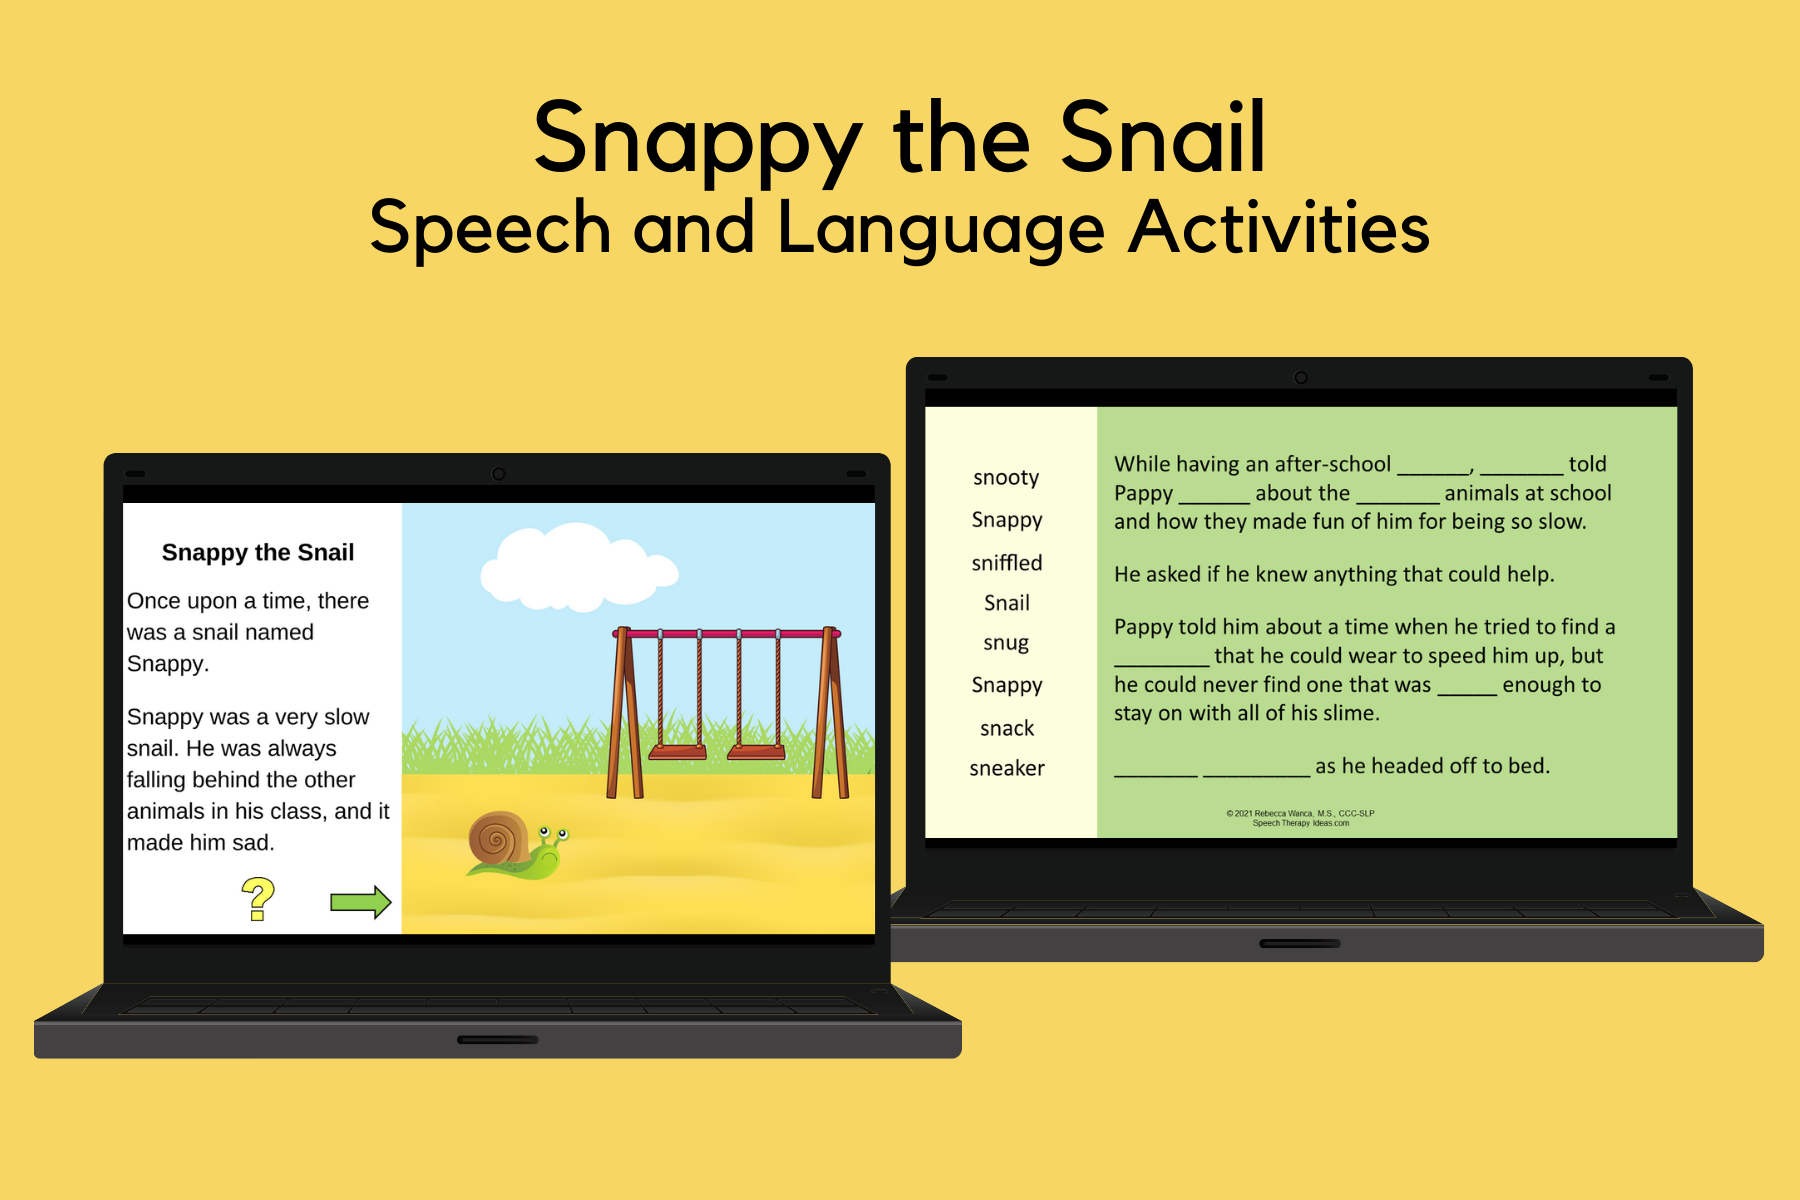 Snappy the Snail for Speech and Language Therapy